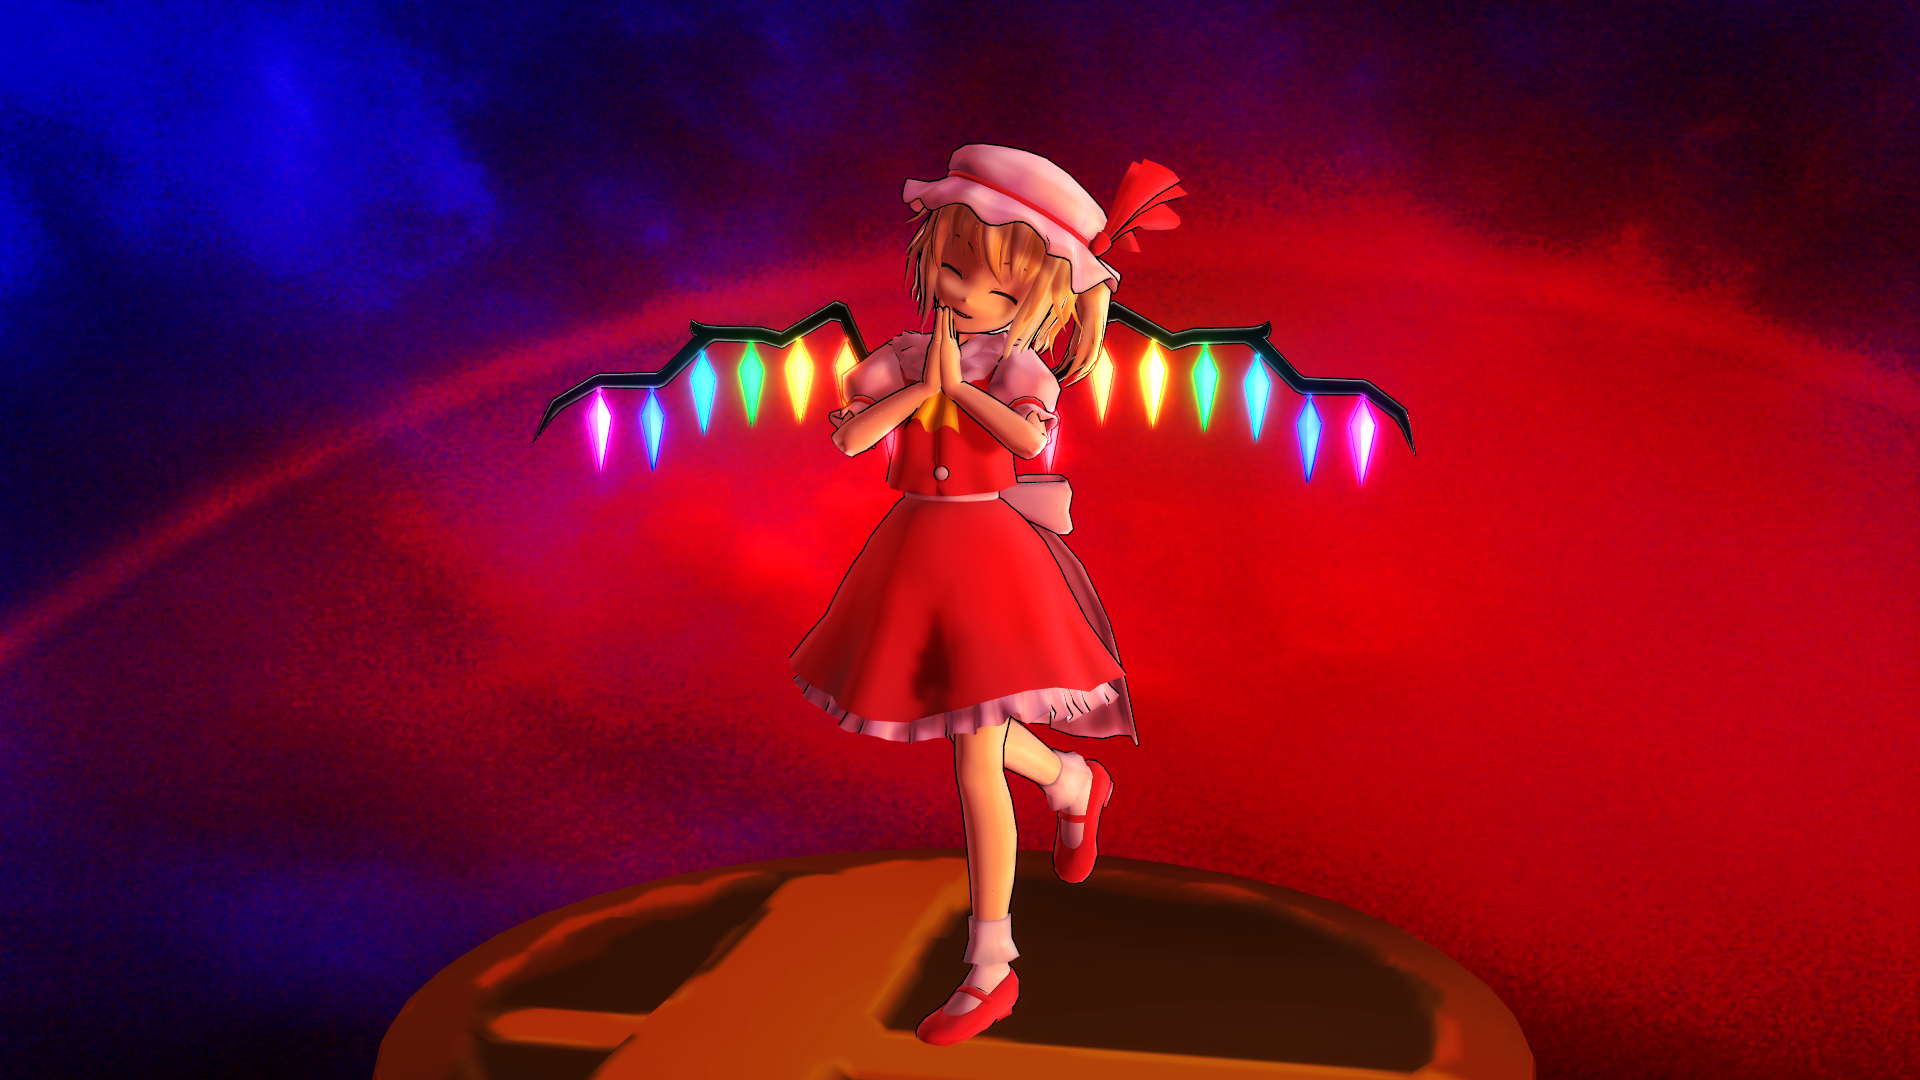 Smash Bros Trophy Flandre 1920x1080 by headstert